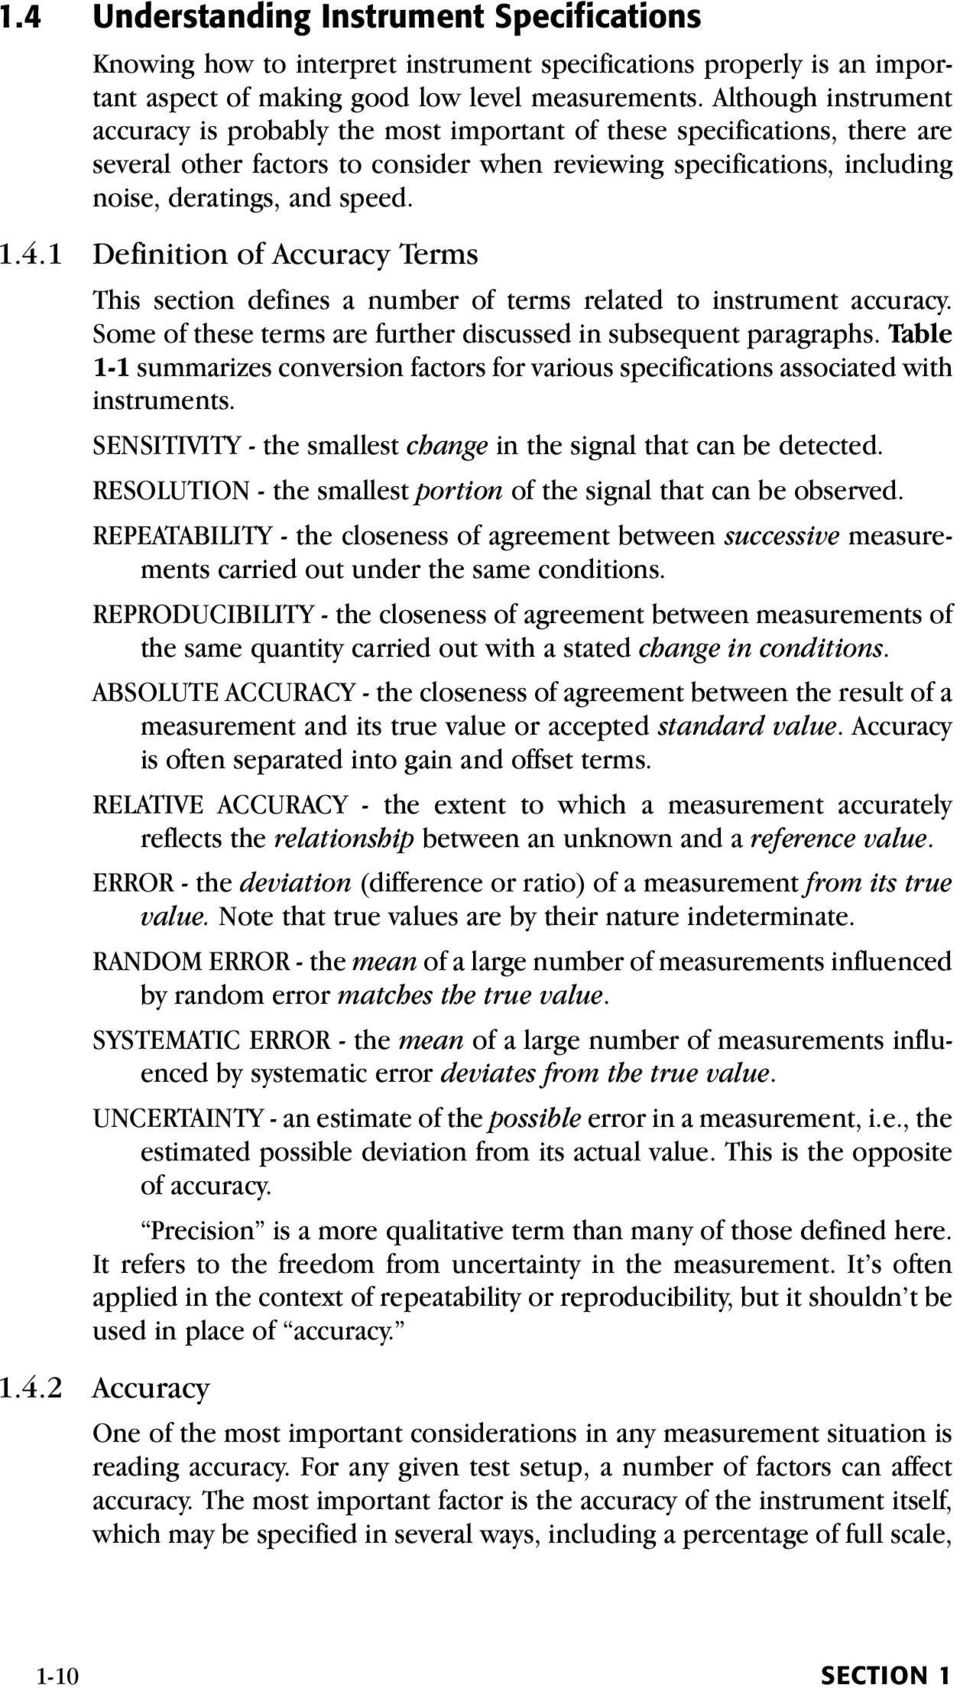 1.4.1 Definition of Accuracy Terms This section defines a number of terms related to instrument accuracy. Some of these terms are further discussed in subsequent paragraphs.